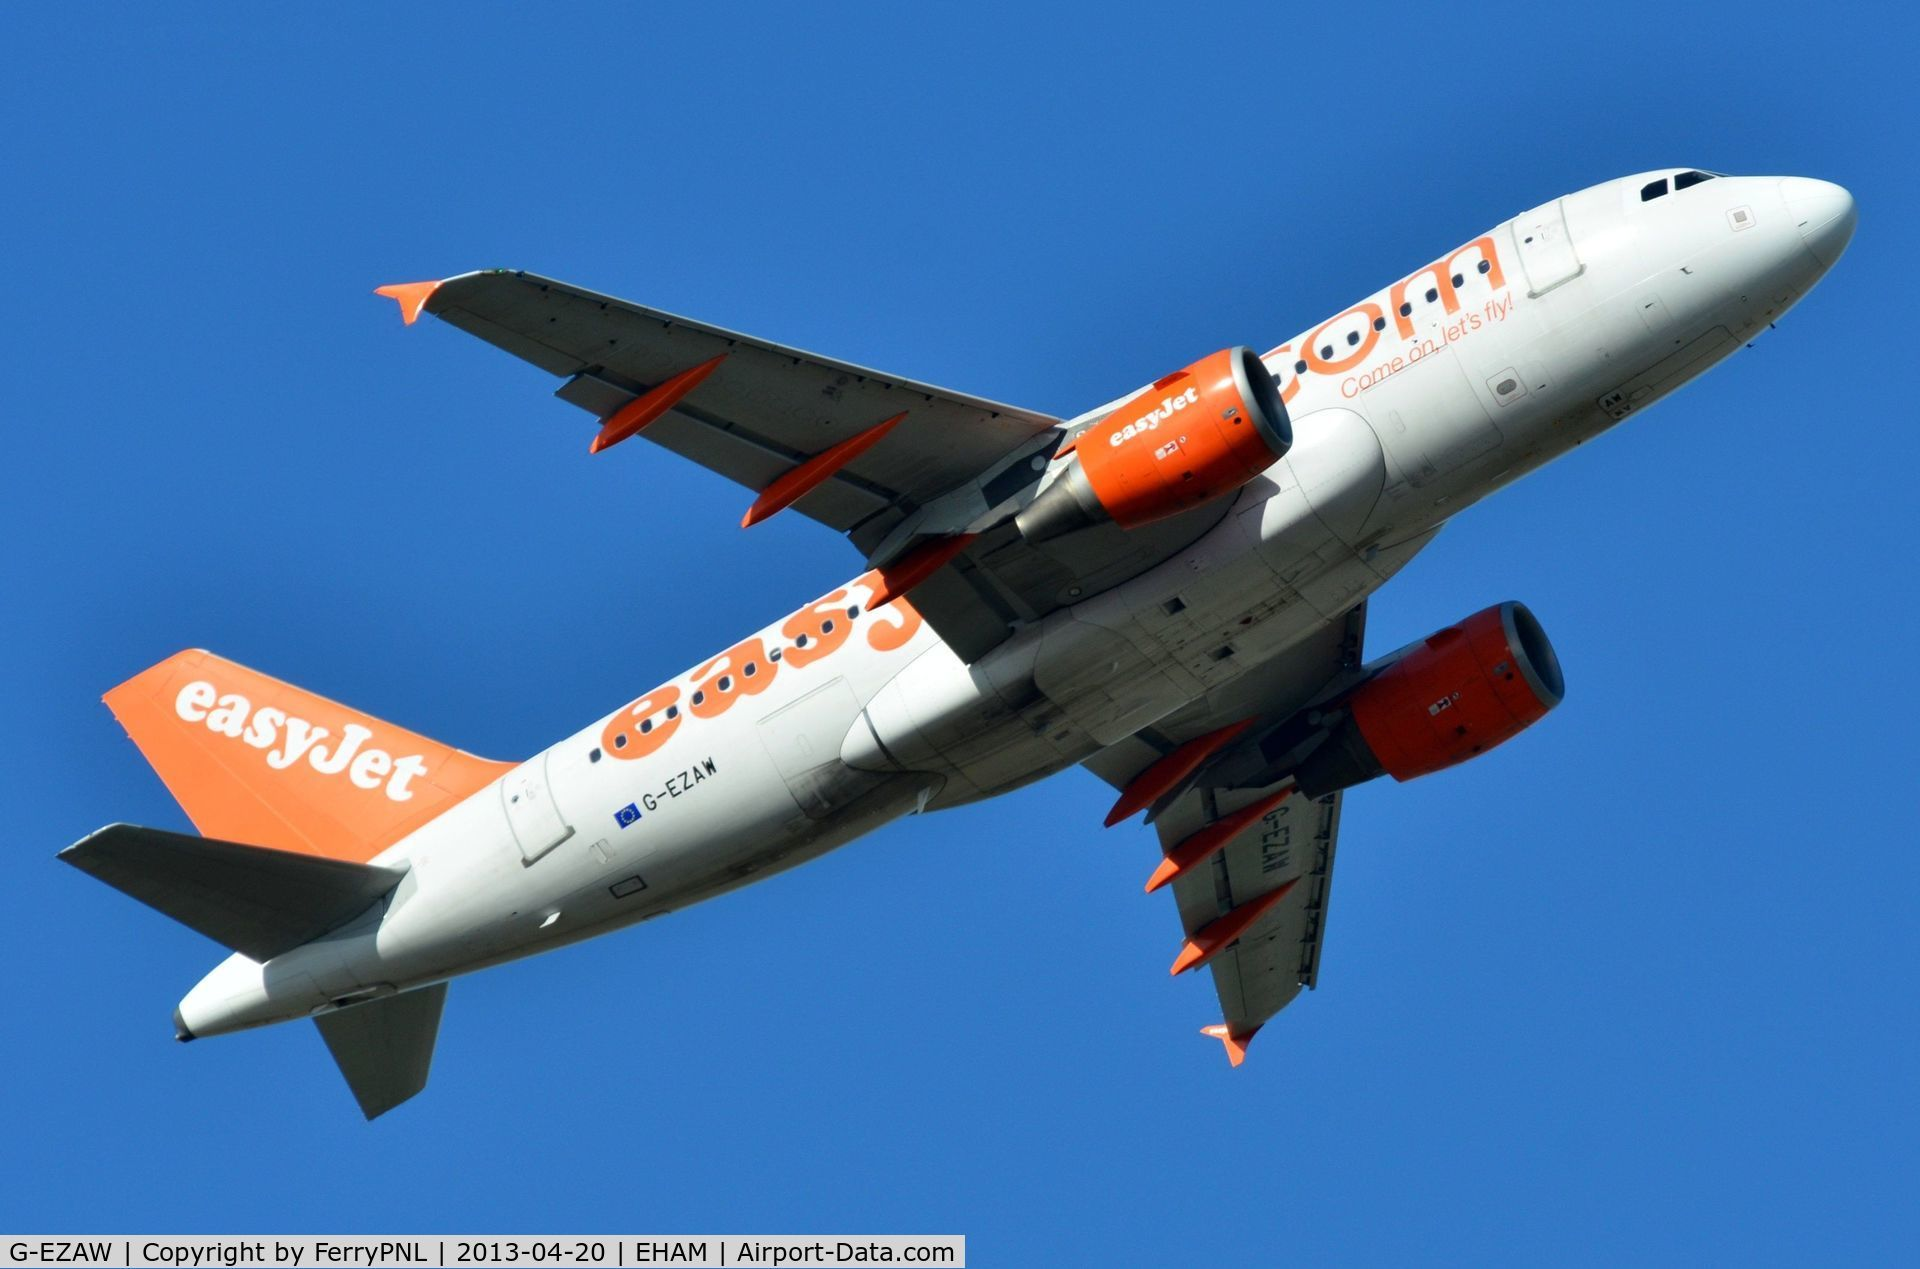 G-EZAW, 2006 Airbus A319-111 C/N 2812, Easyjet A319 lifting off from AMS